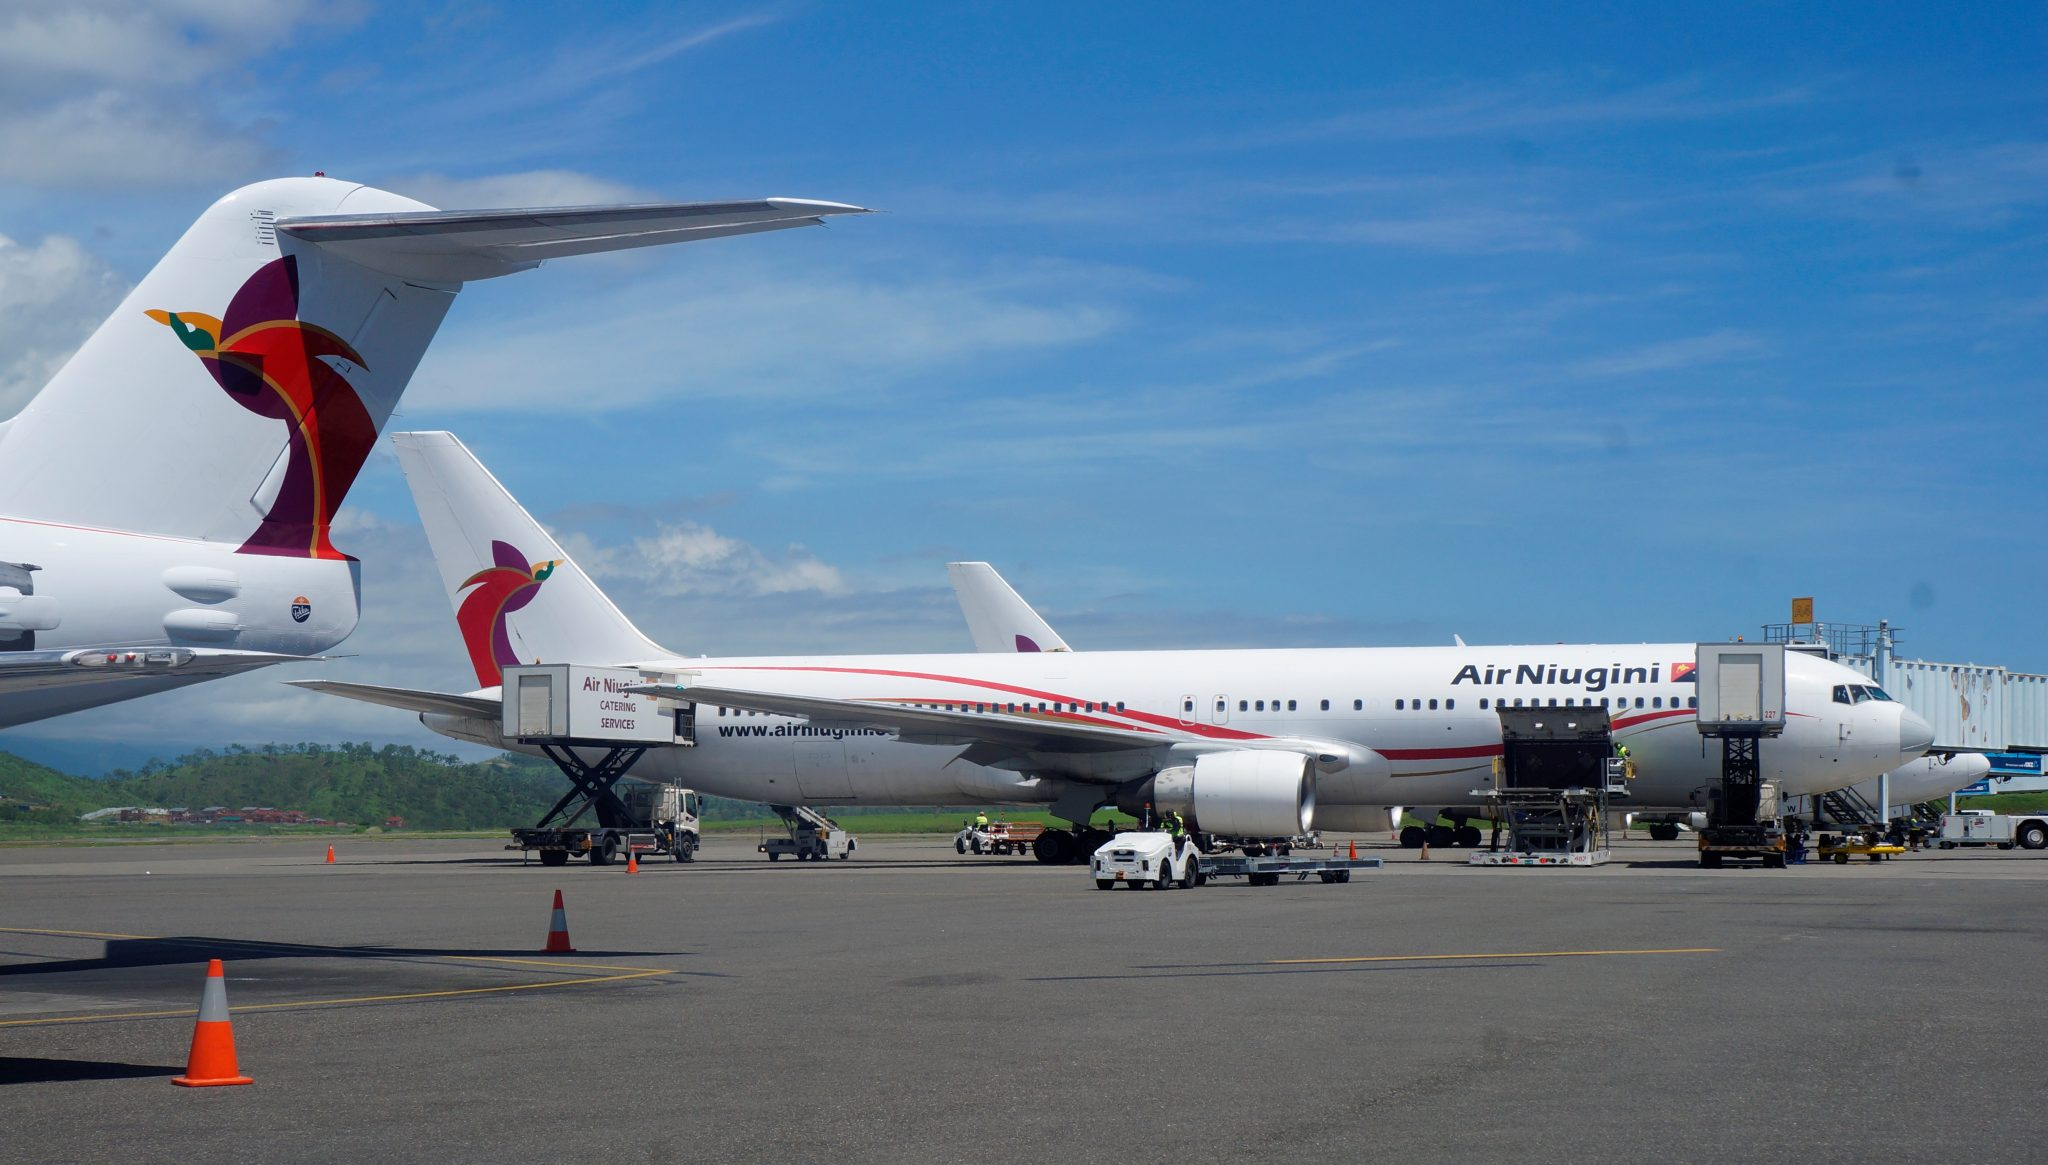 Air Niugini Flights During APEC